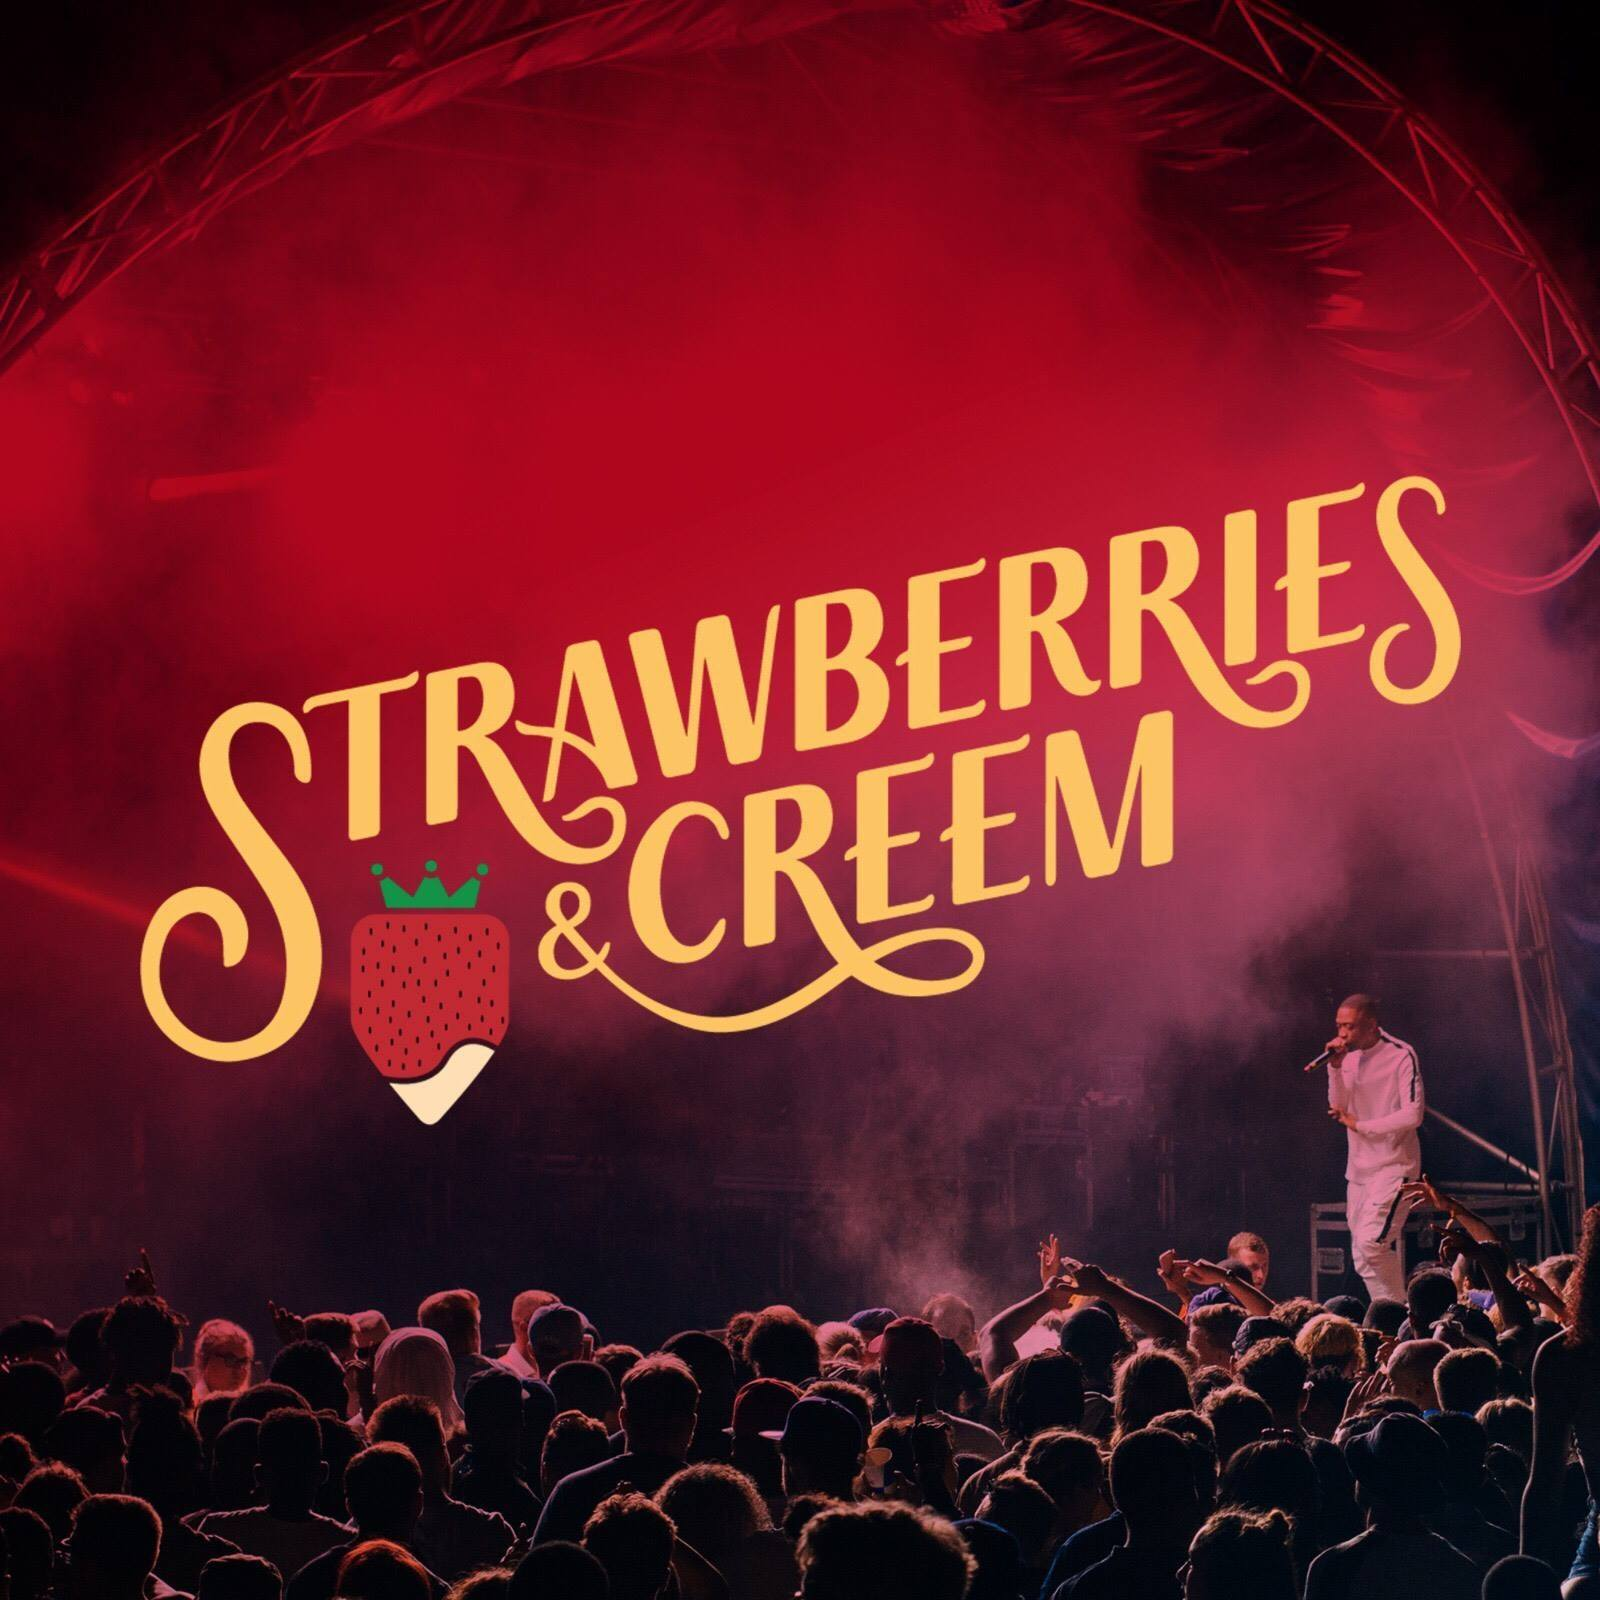 Strawberries and Creem Music Festival - Cambridge, UK Music Festival 2020